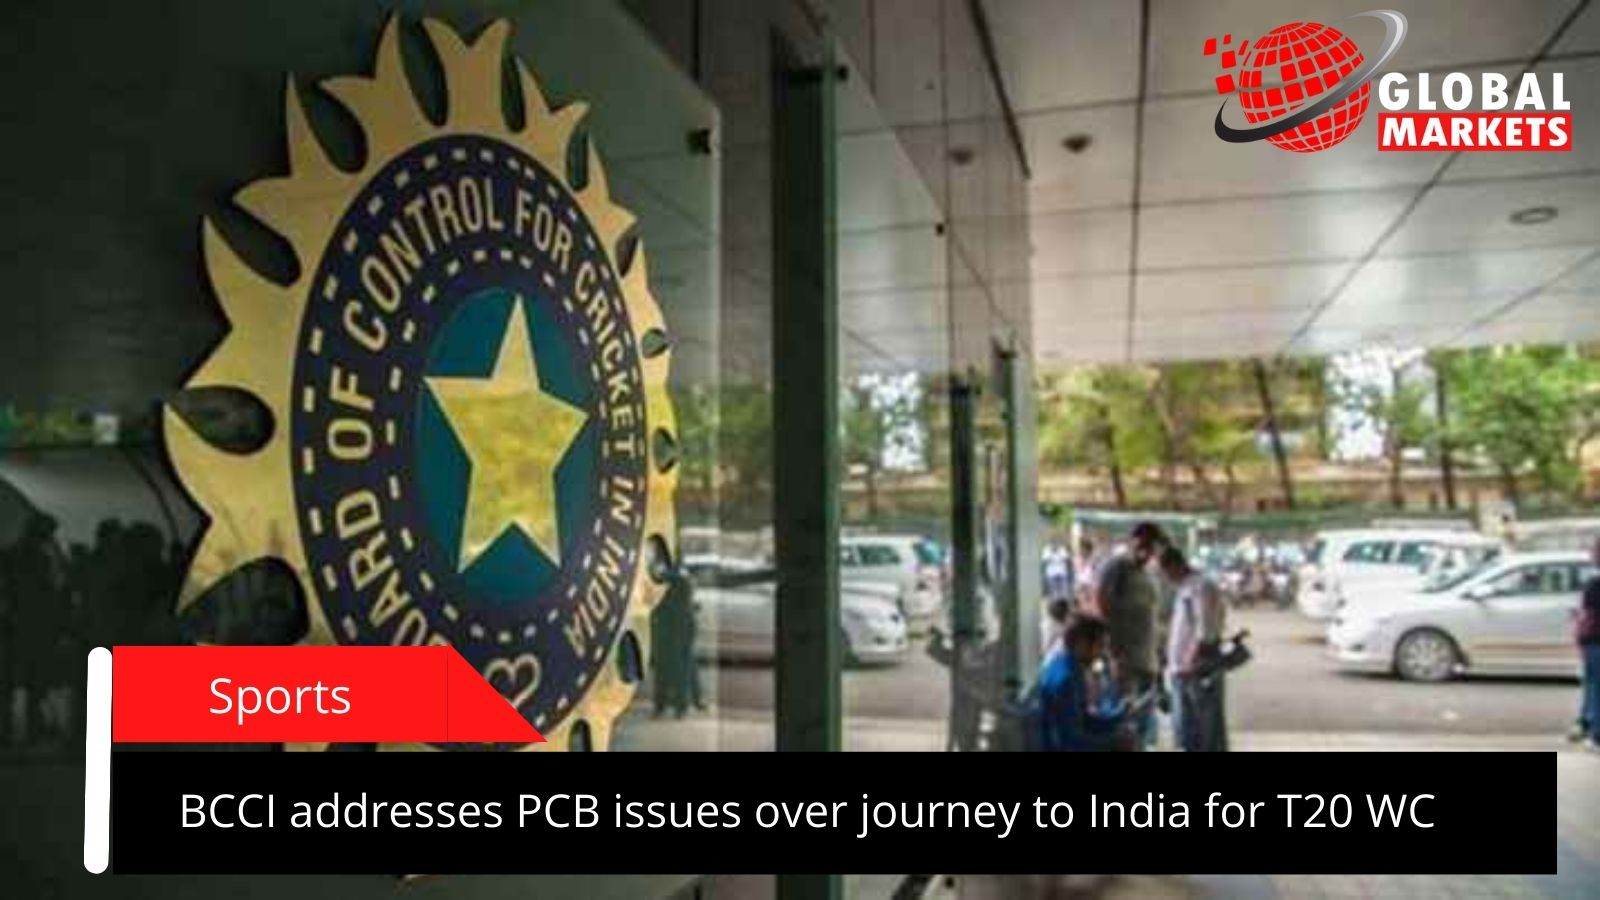 BCCI addresses PCB issues over journey to India for T20 WC